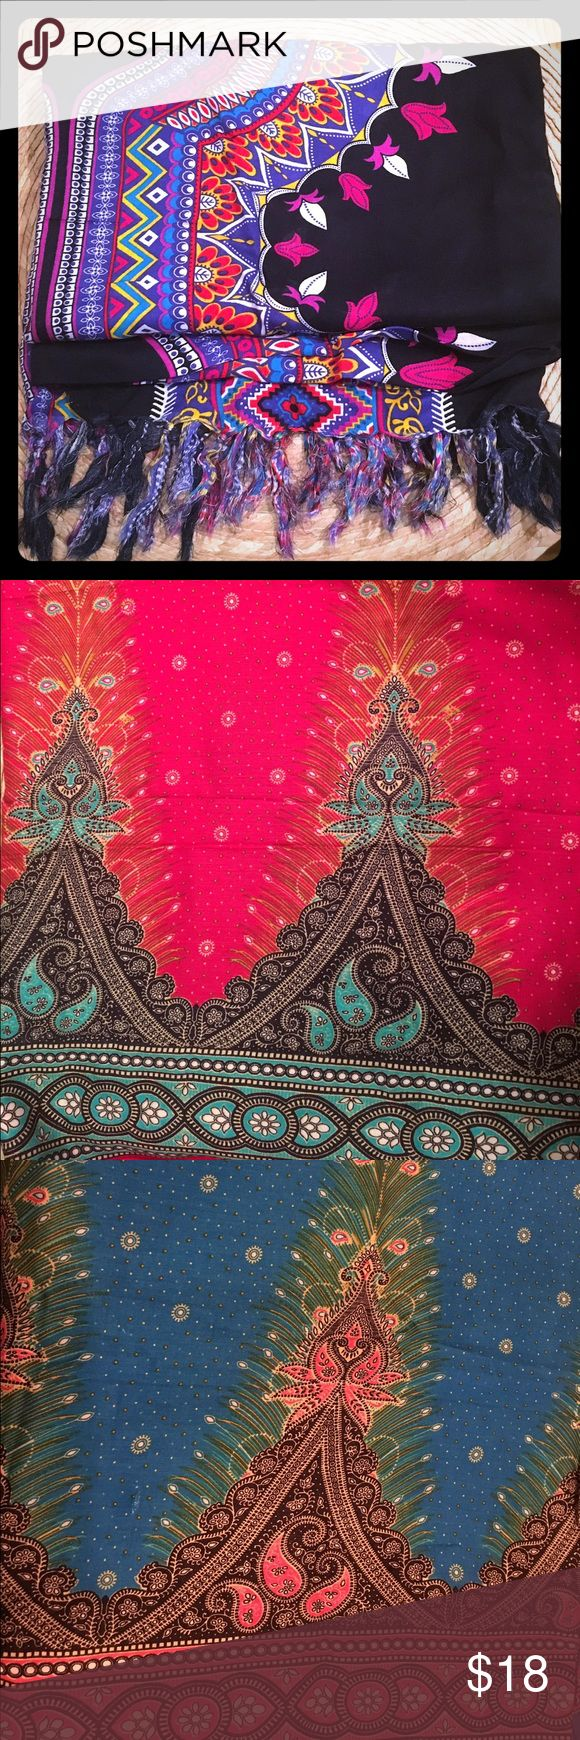 🌟NIP: Brand New Sarong Wraps. Various Patterns-OS Brand new sarongs in various colors and patterns: black (1st pic), turquoise, magenta pink, & black/green/yellow.  The first 3 are wraps with tassels in the ends. The last kimono in photos has a tie with a hole for a wrap skirt. What's Sa-rong? Swim Sarongs